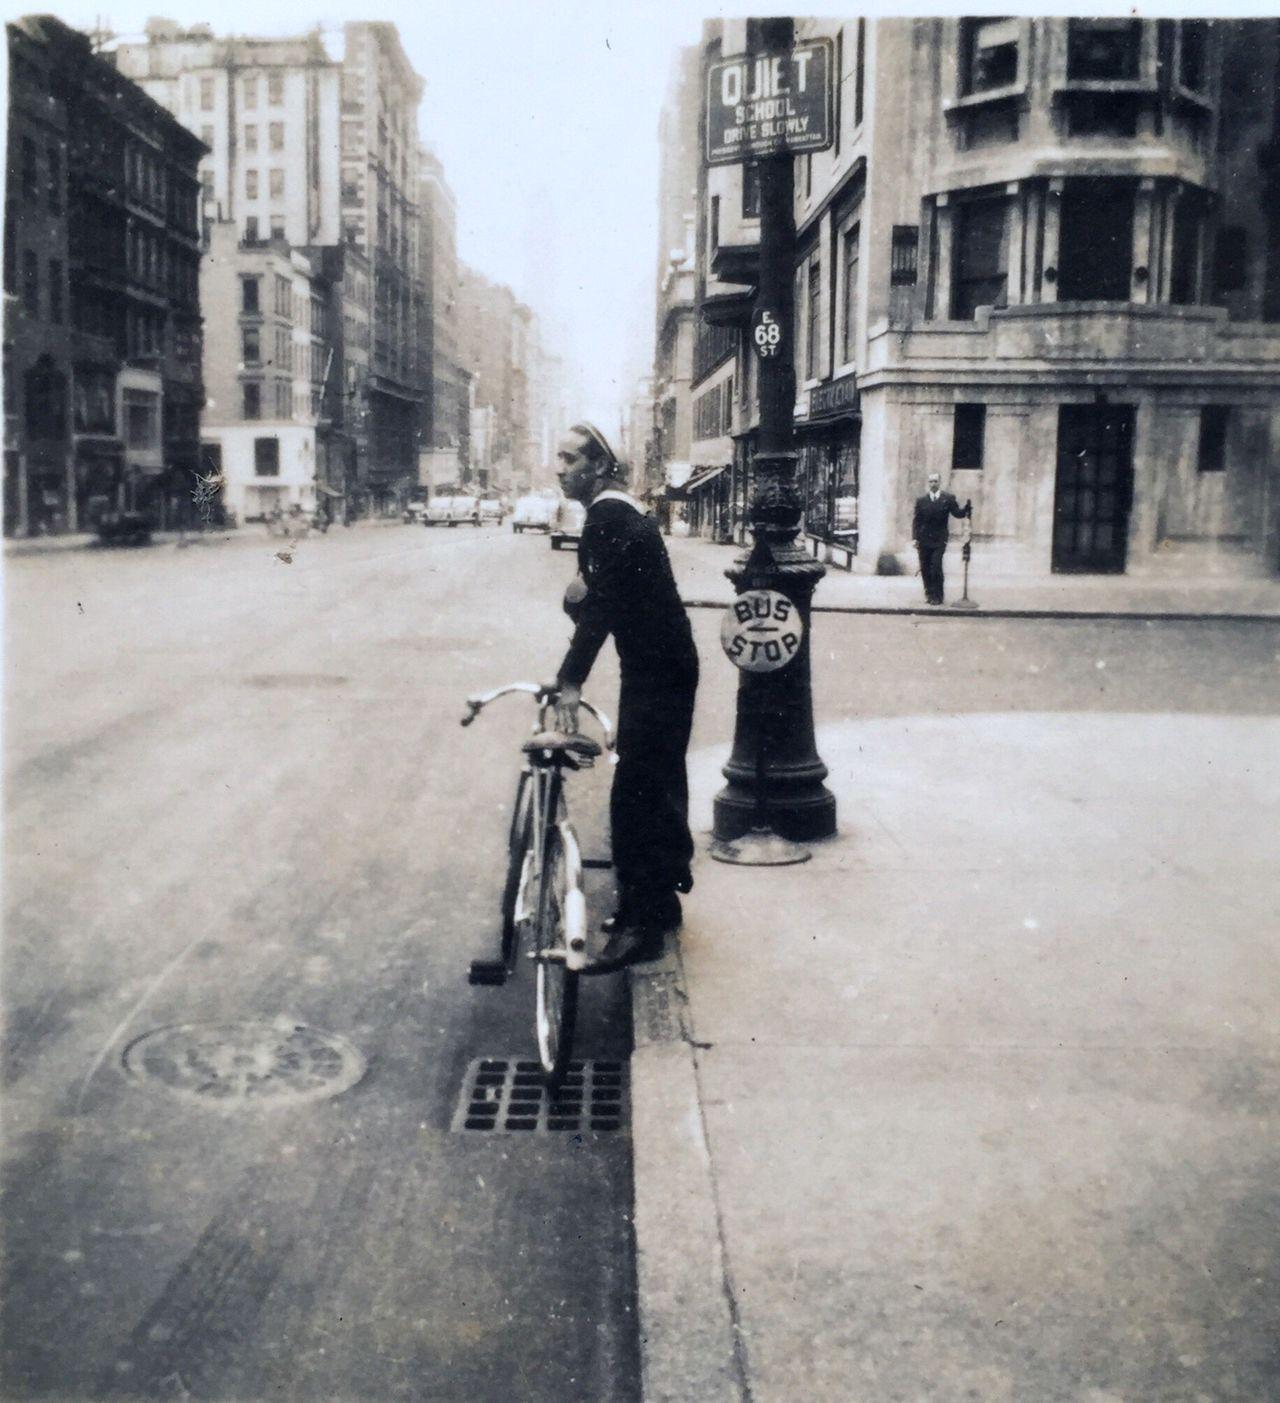 Vintage Photo Blackandwhite Real People One Person City